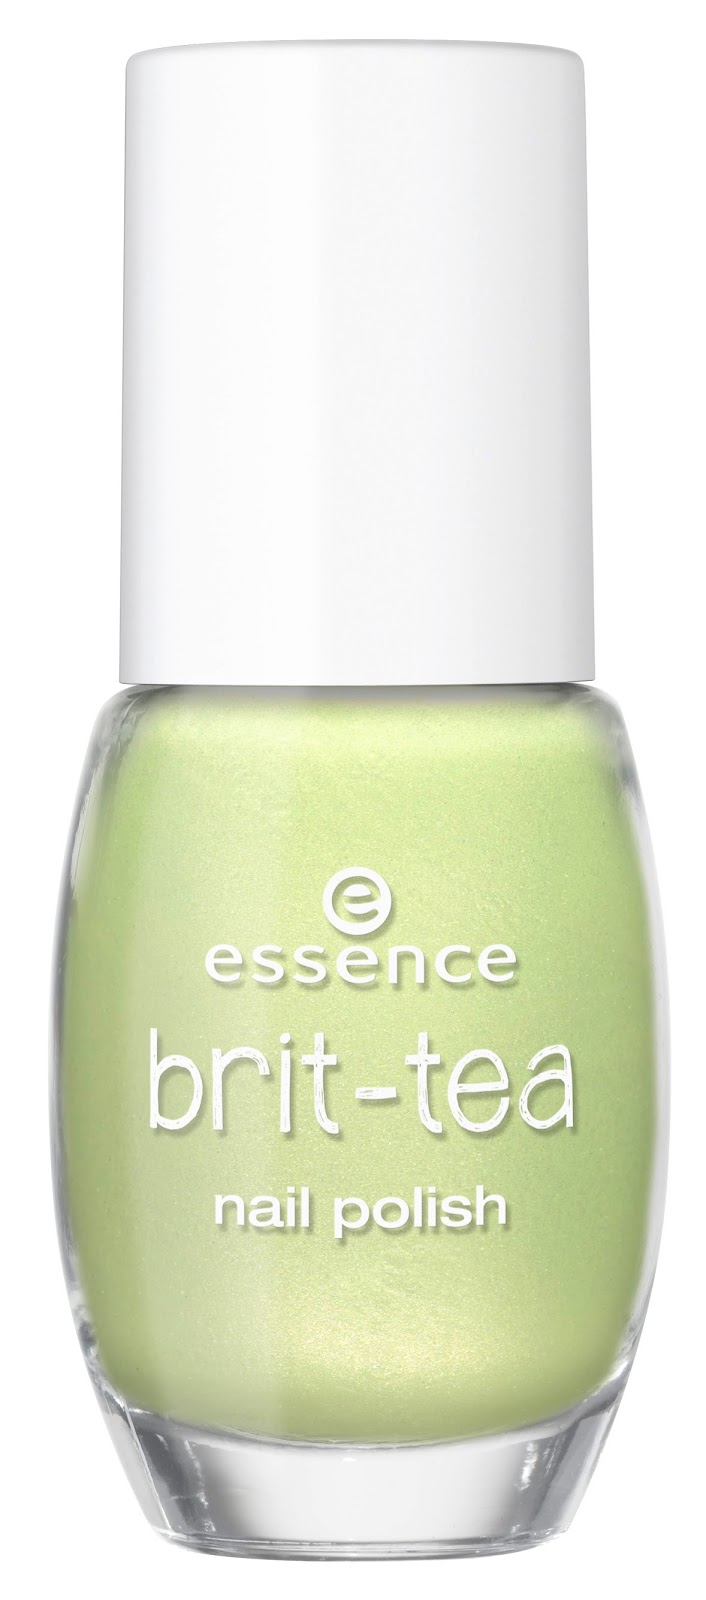 essence brit tea nail polish 01 02